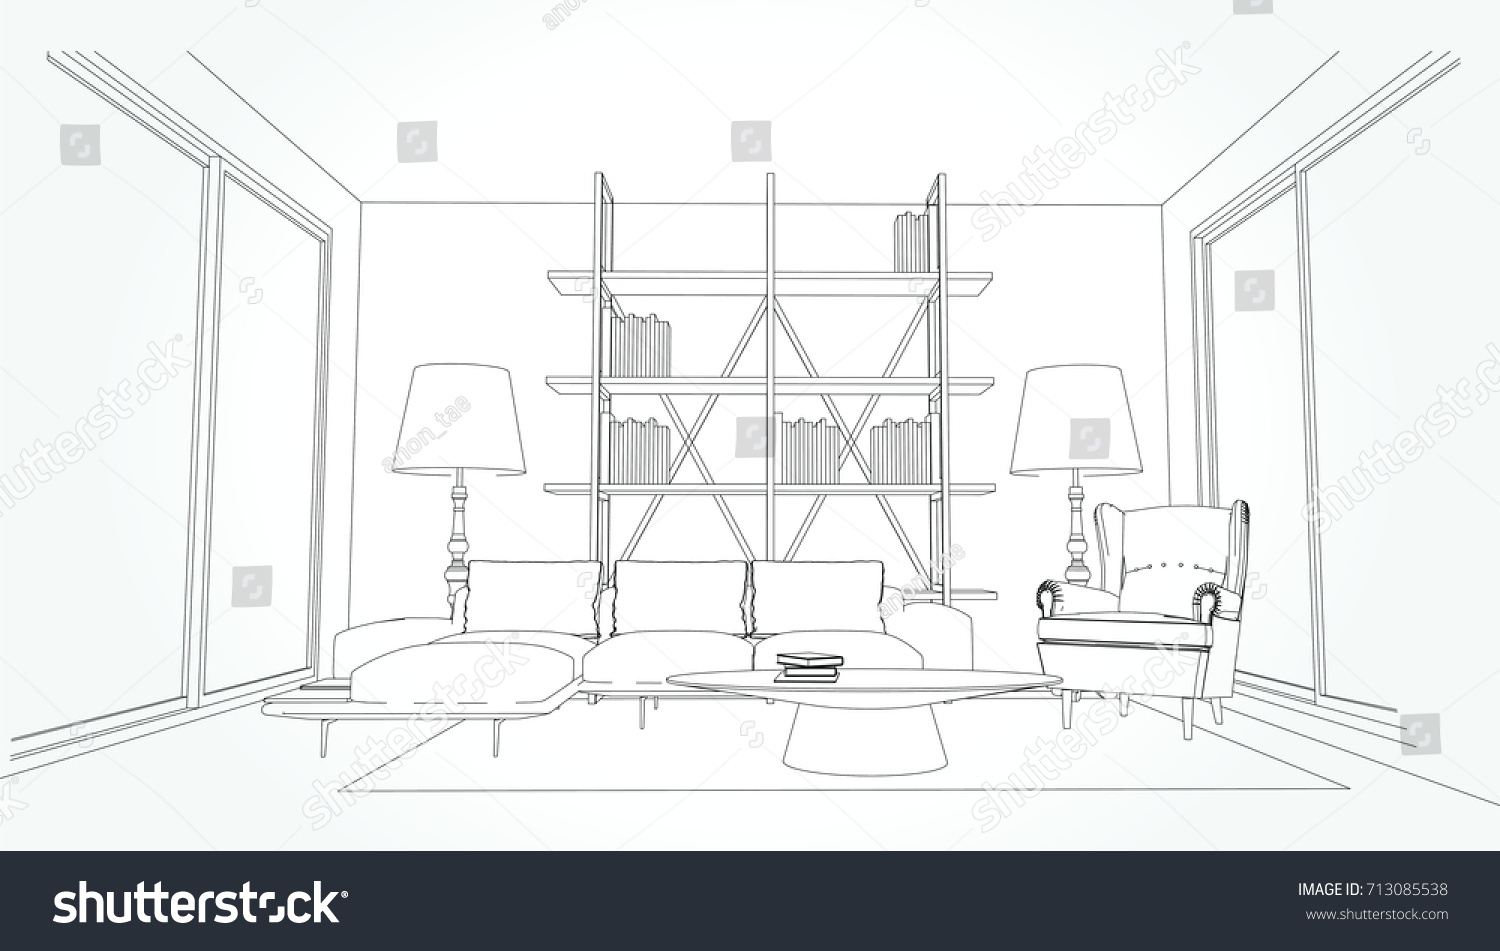 The Line Art And Living : Linear sketch interior living room plan stock vector hd royalty